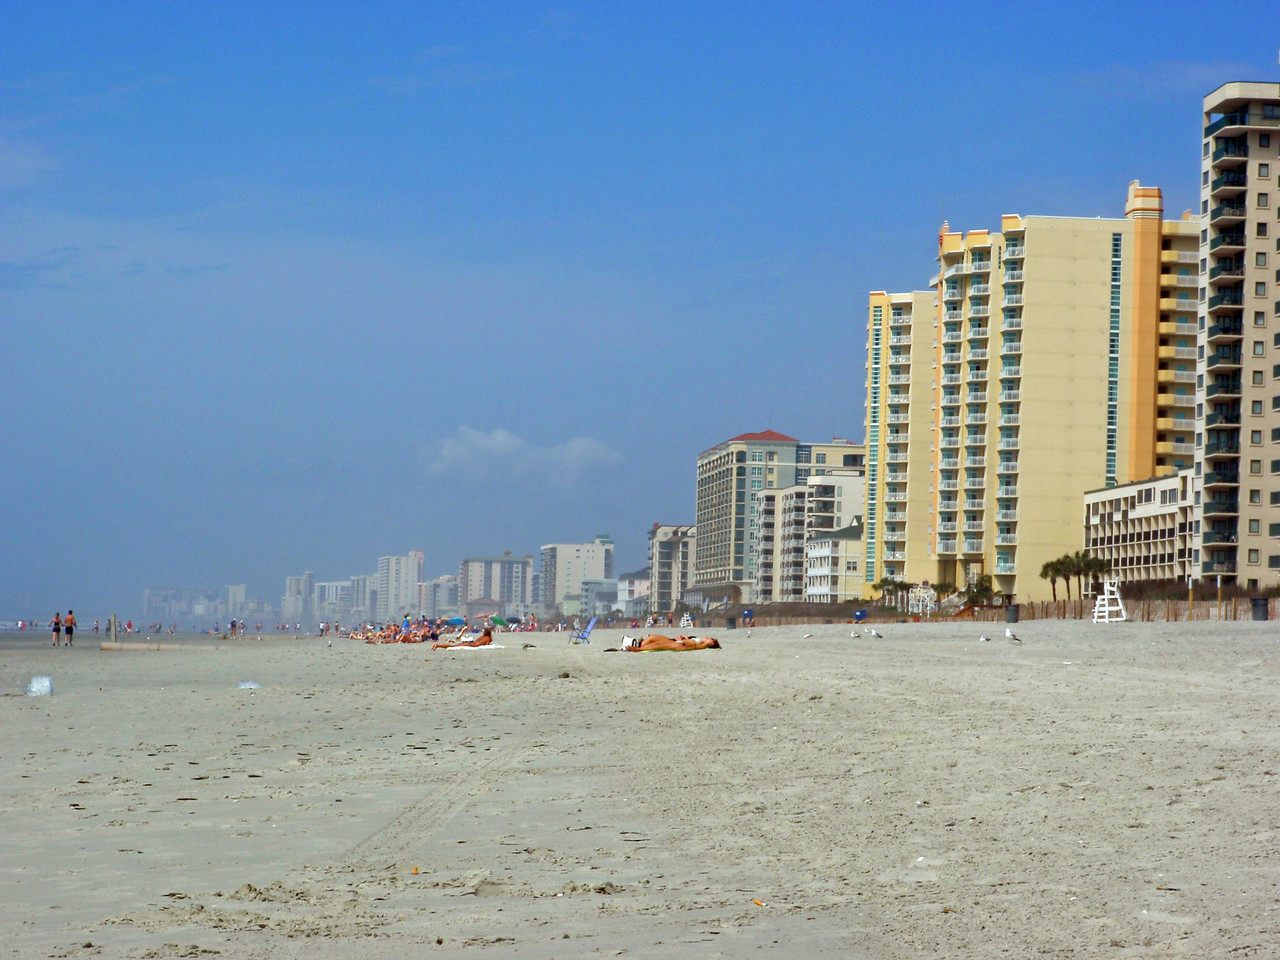 Lots of condos here in North Myrtle